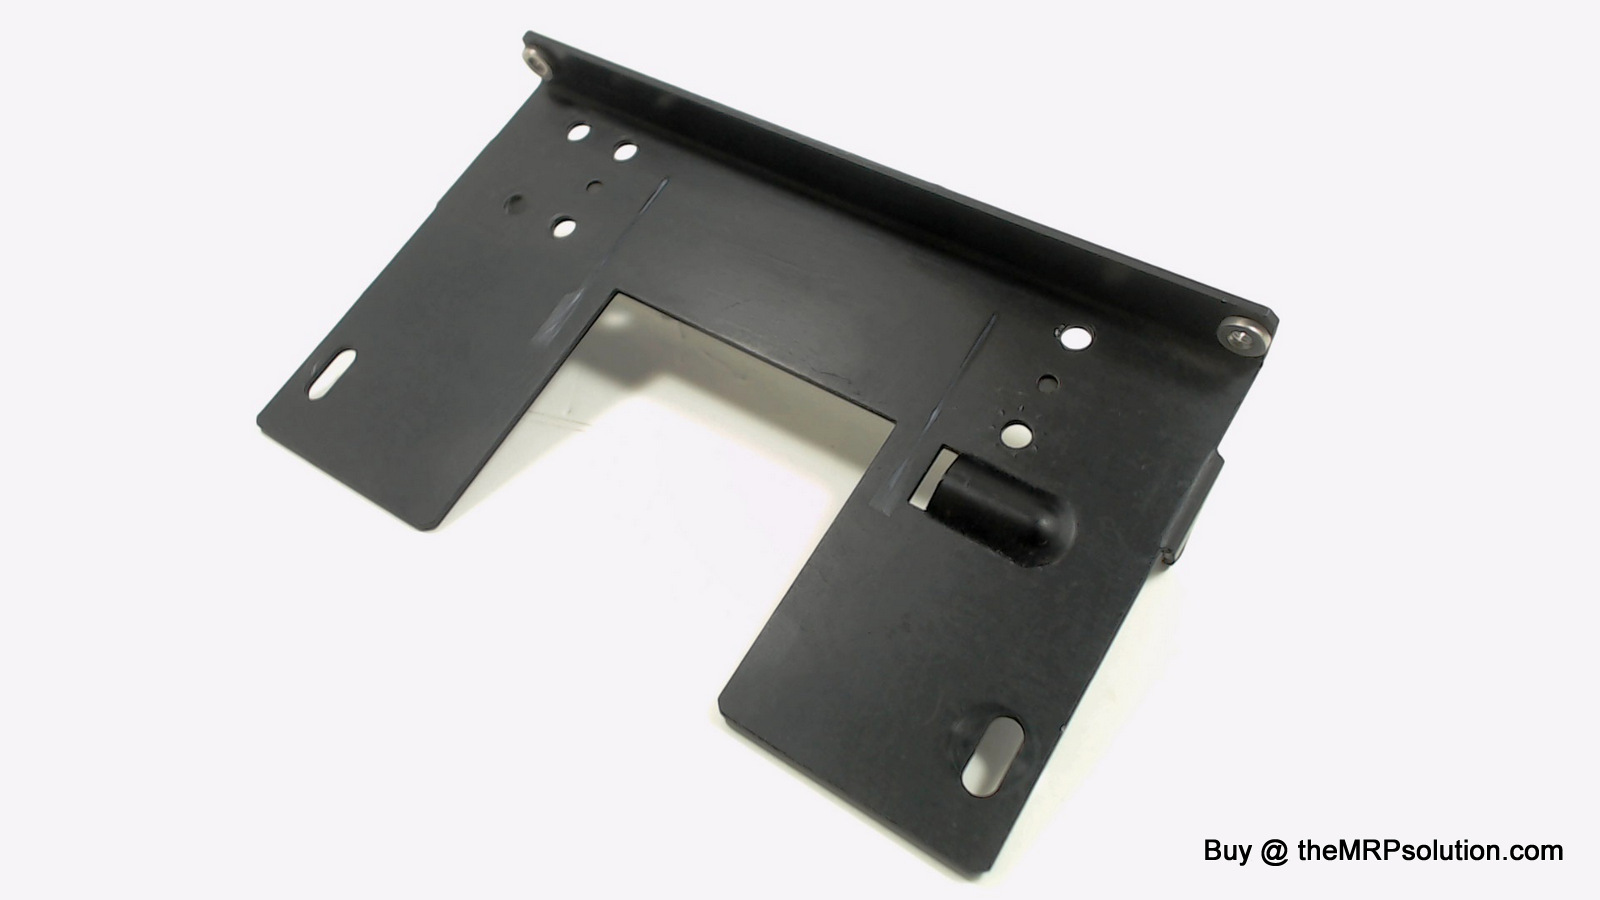 ZEBRA 44940 HEAD MOUNTING BRACKET, S500 Refurbished